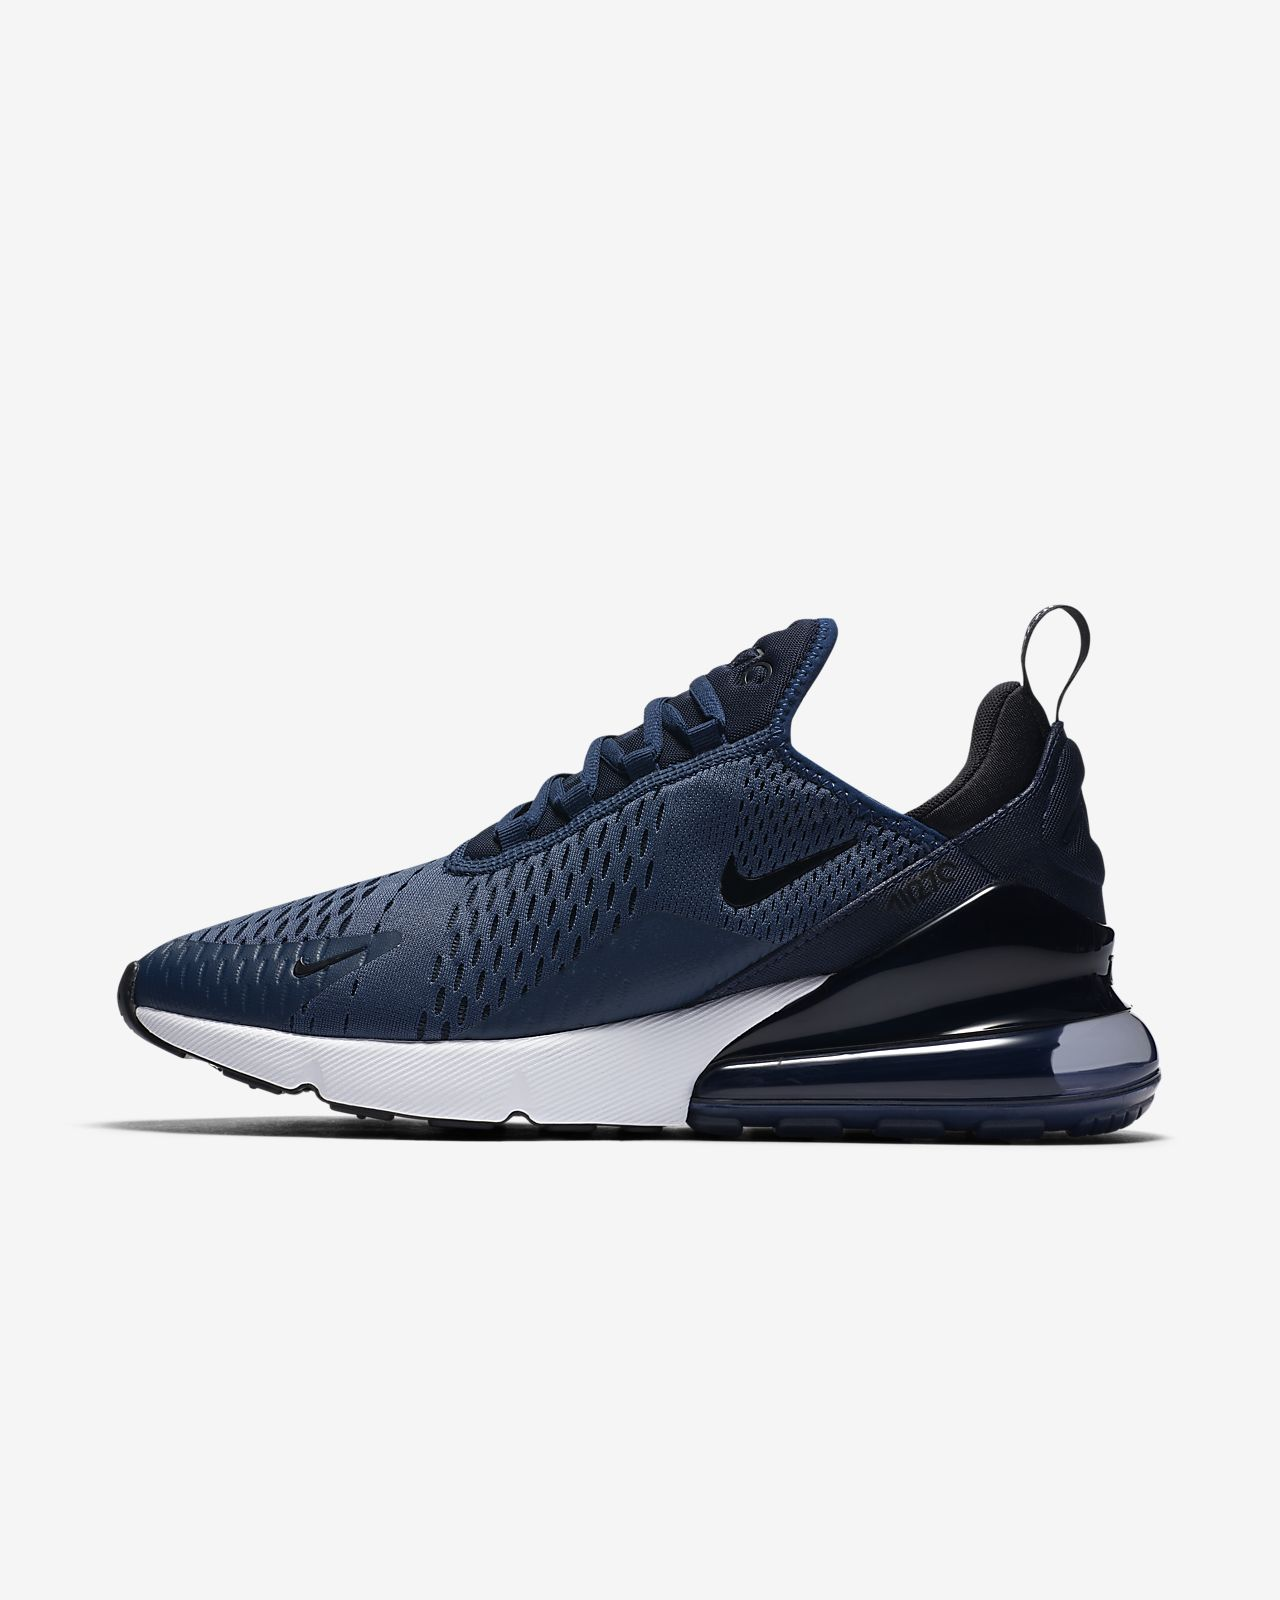 the best attitude 26818 4d7b9 Chaussure Nike Air Max 270 pour Homme